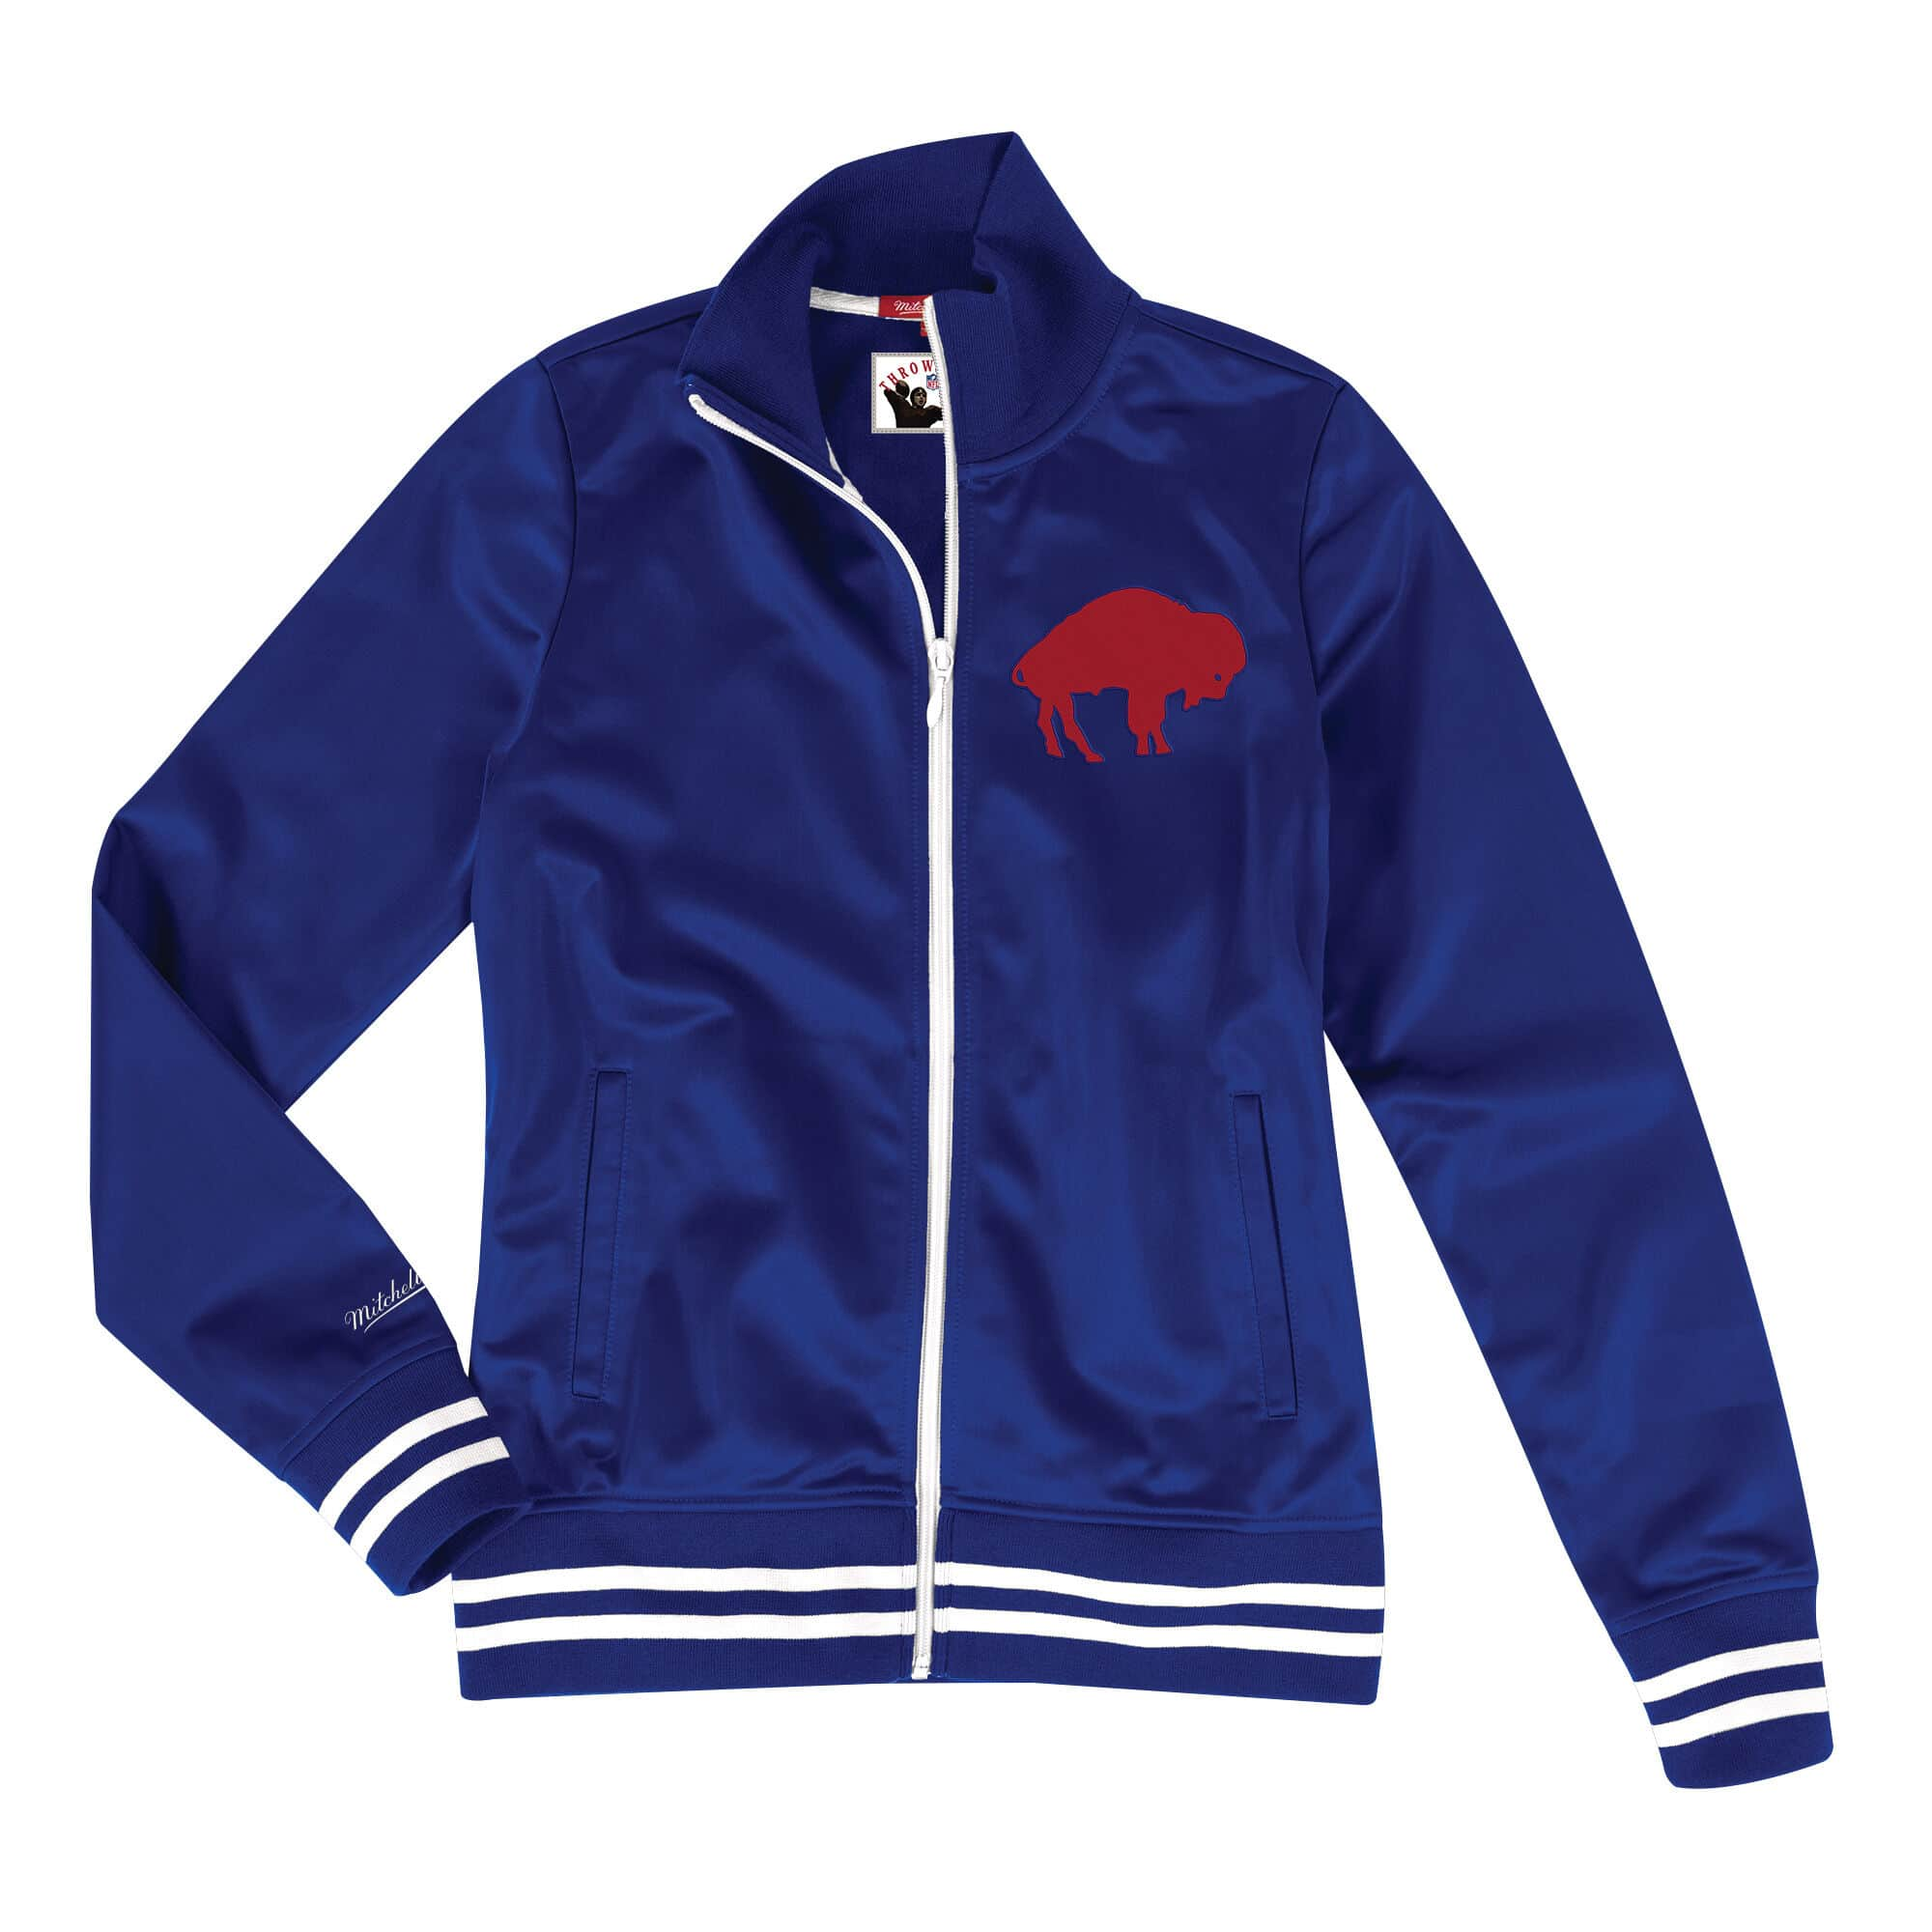 Women's Track Jacket Buffalo Bills